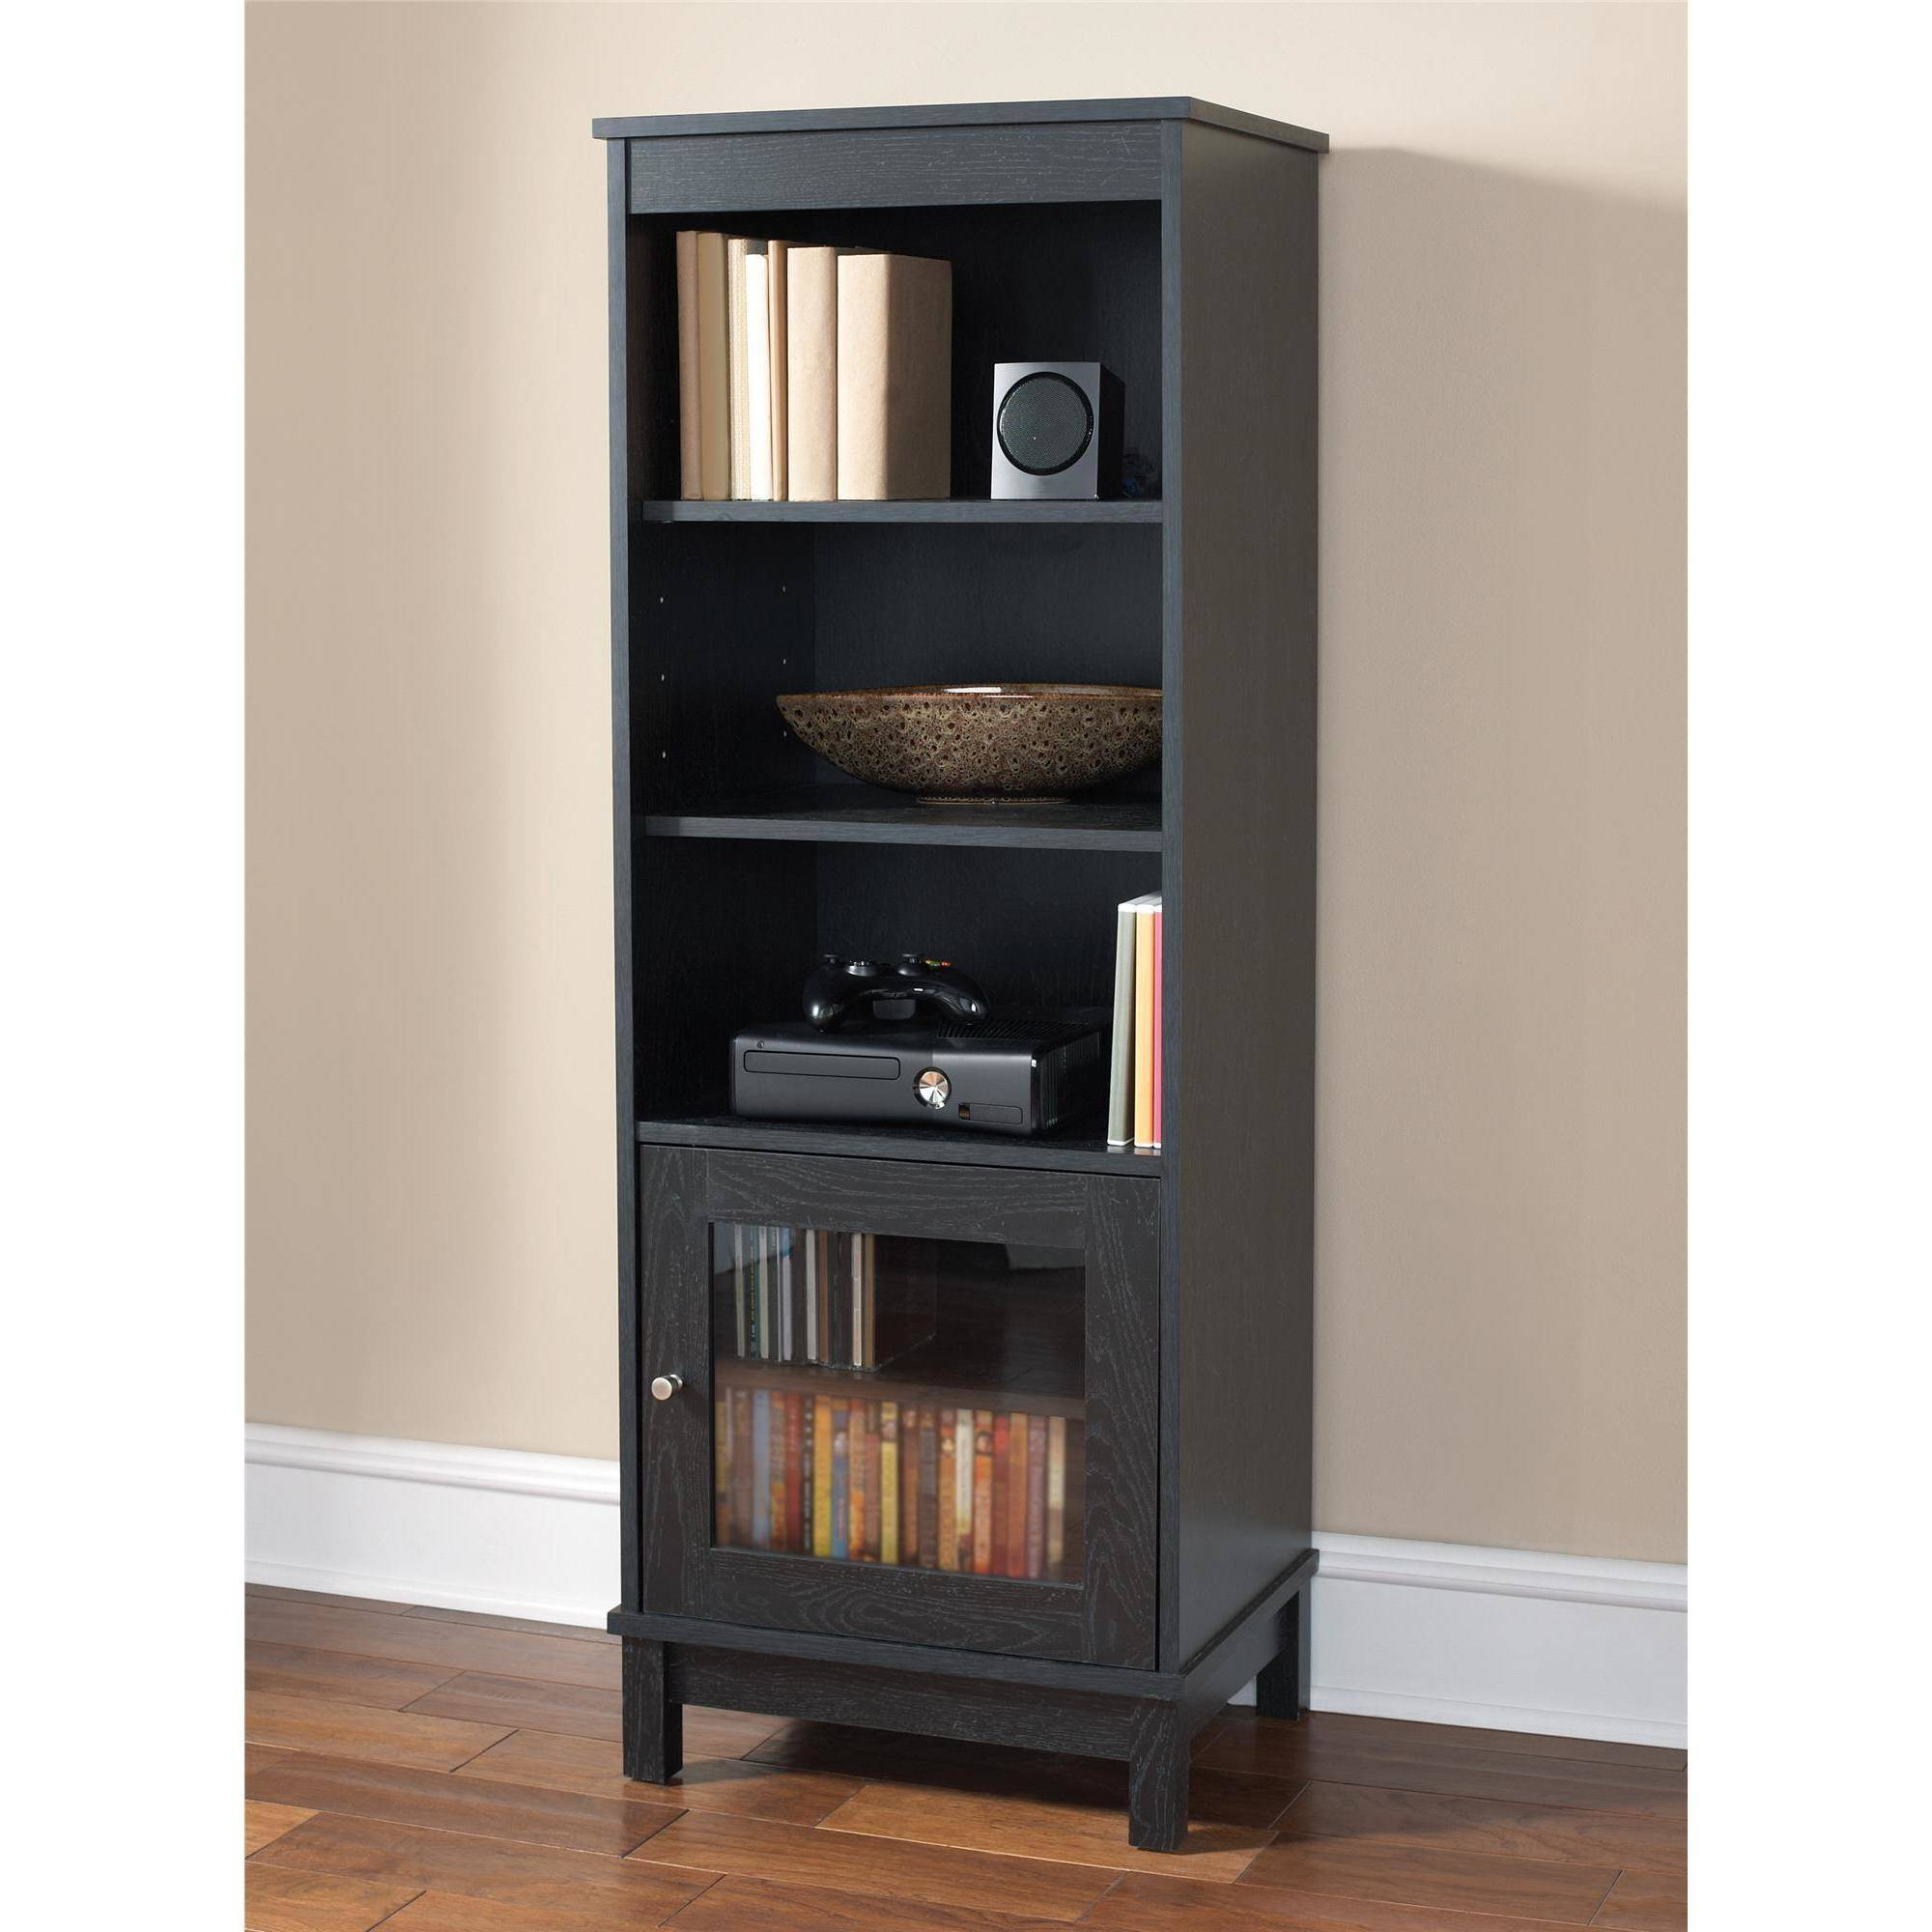 Mainstays Media Storage Bookcase Multiple Finishes Walmartcom - Bookshelves walmart